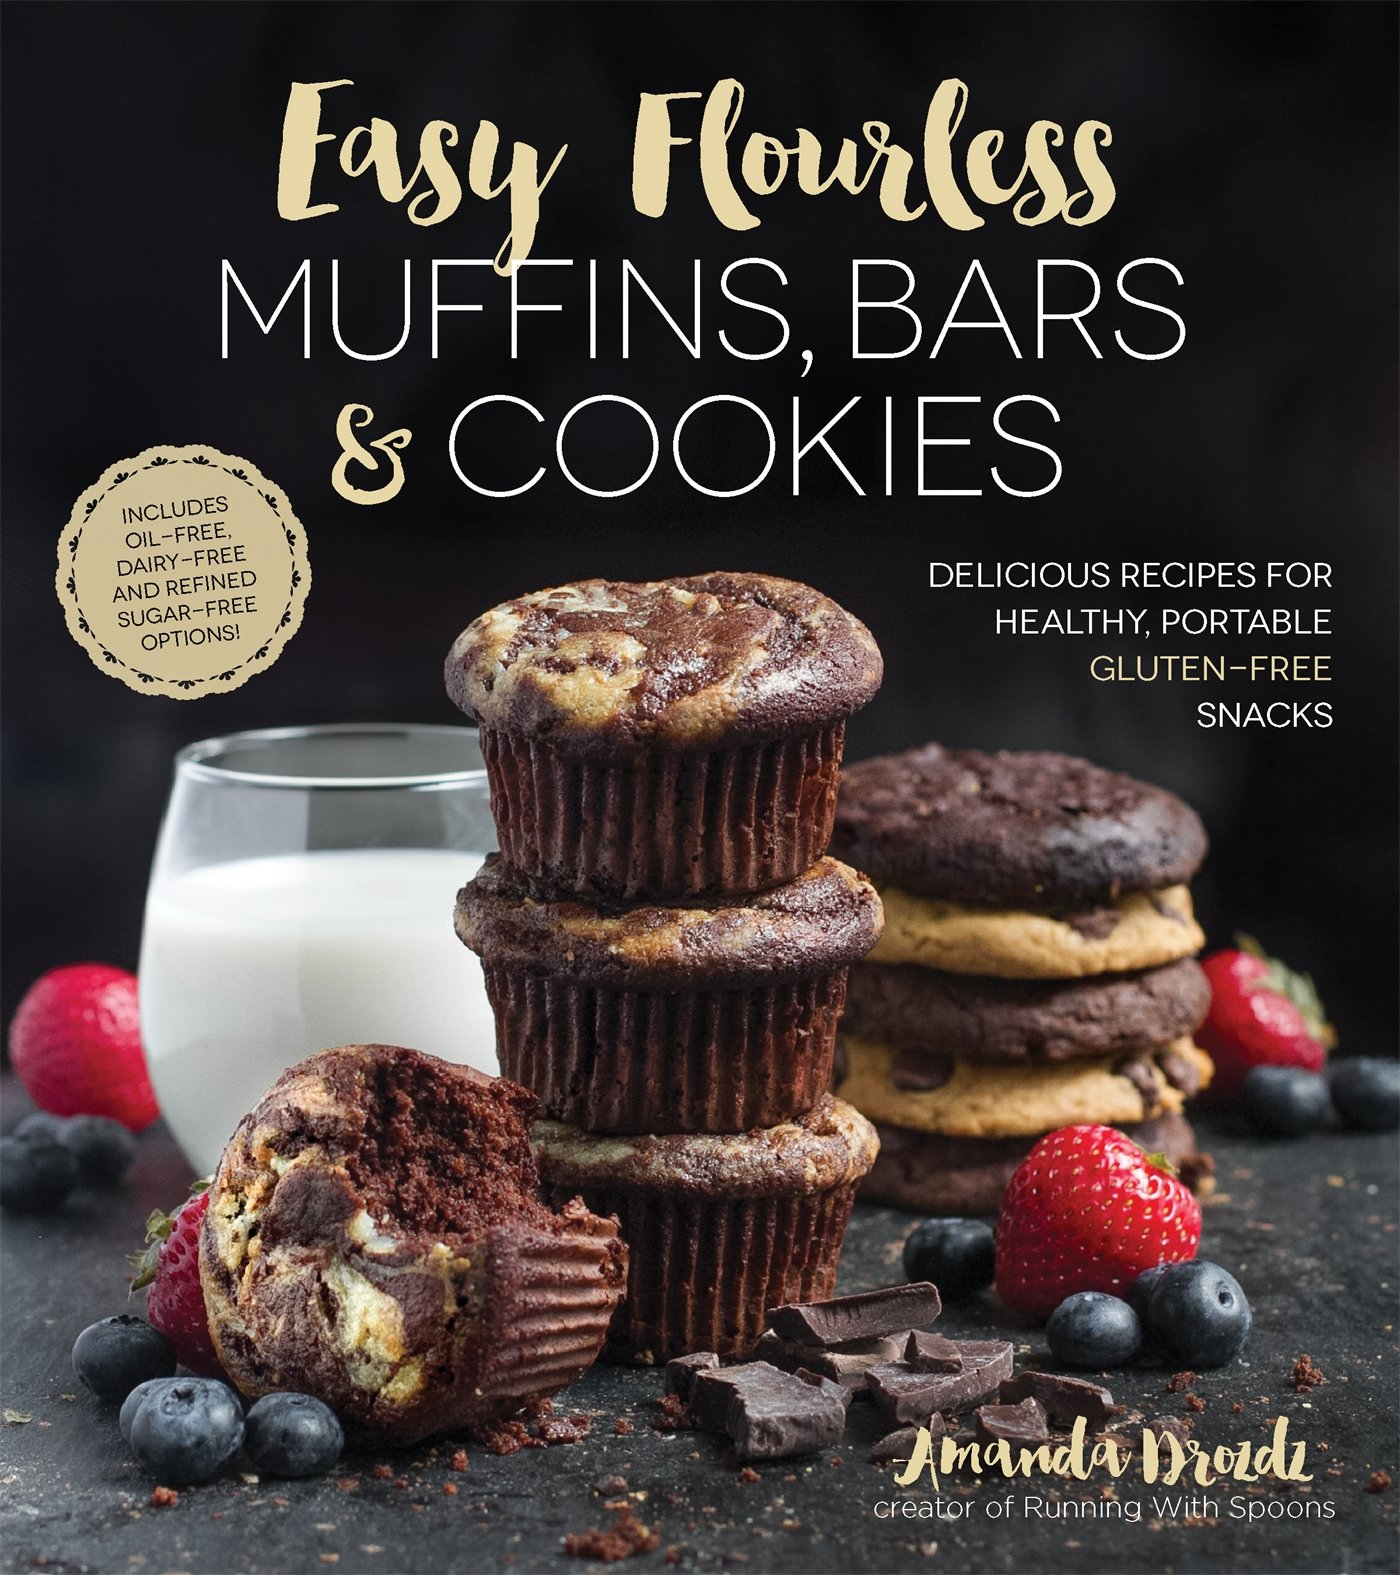 Easy Flourless Muffins, Bars & Cookies: Delicious Recipes for Healthy, Portable Gluten-Free Snacks by Page Street Publishing